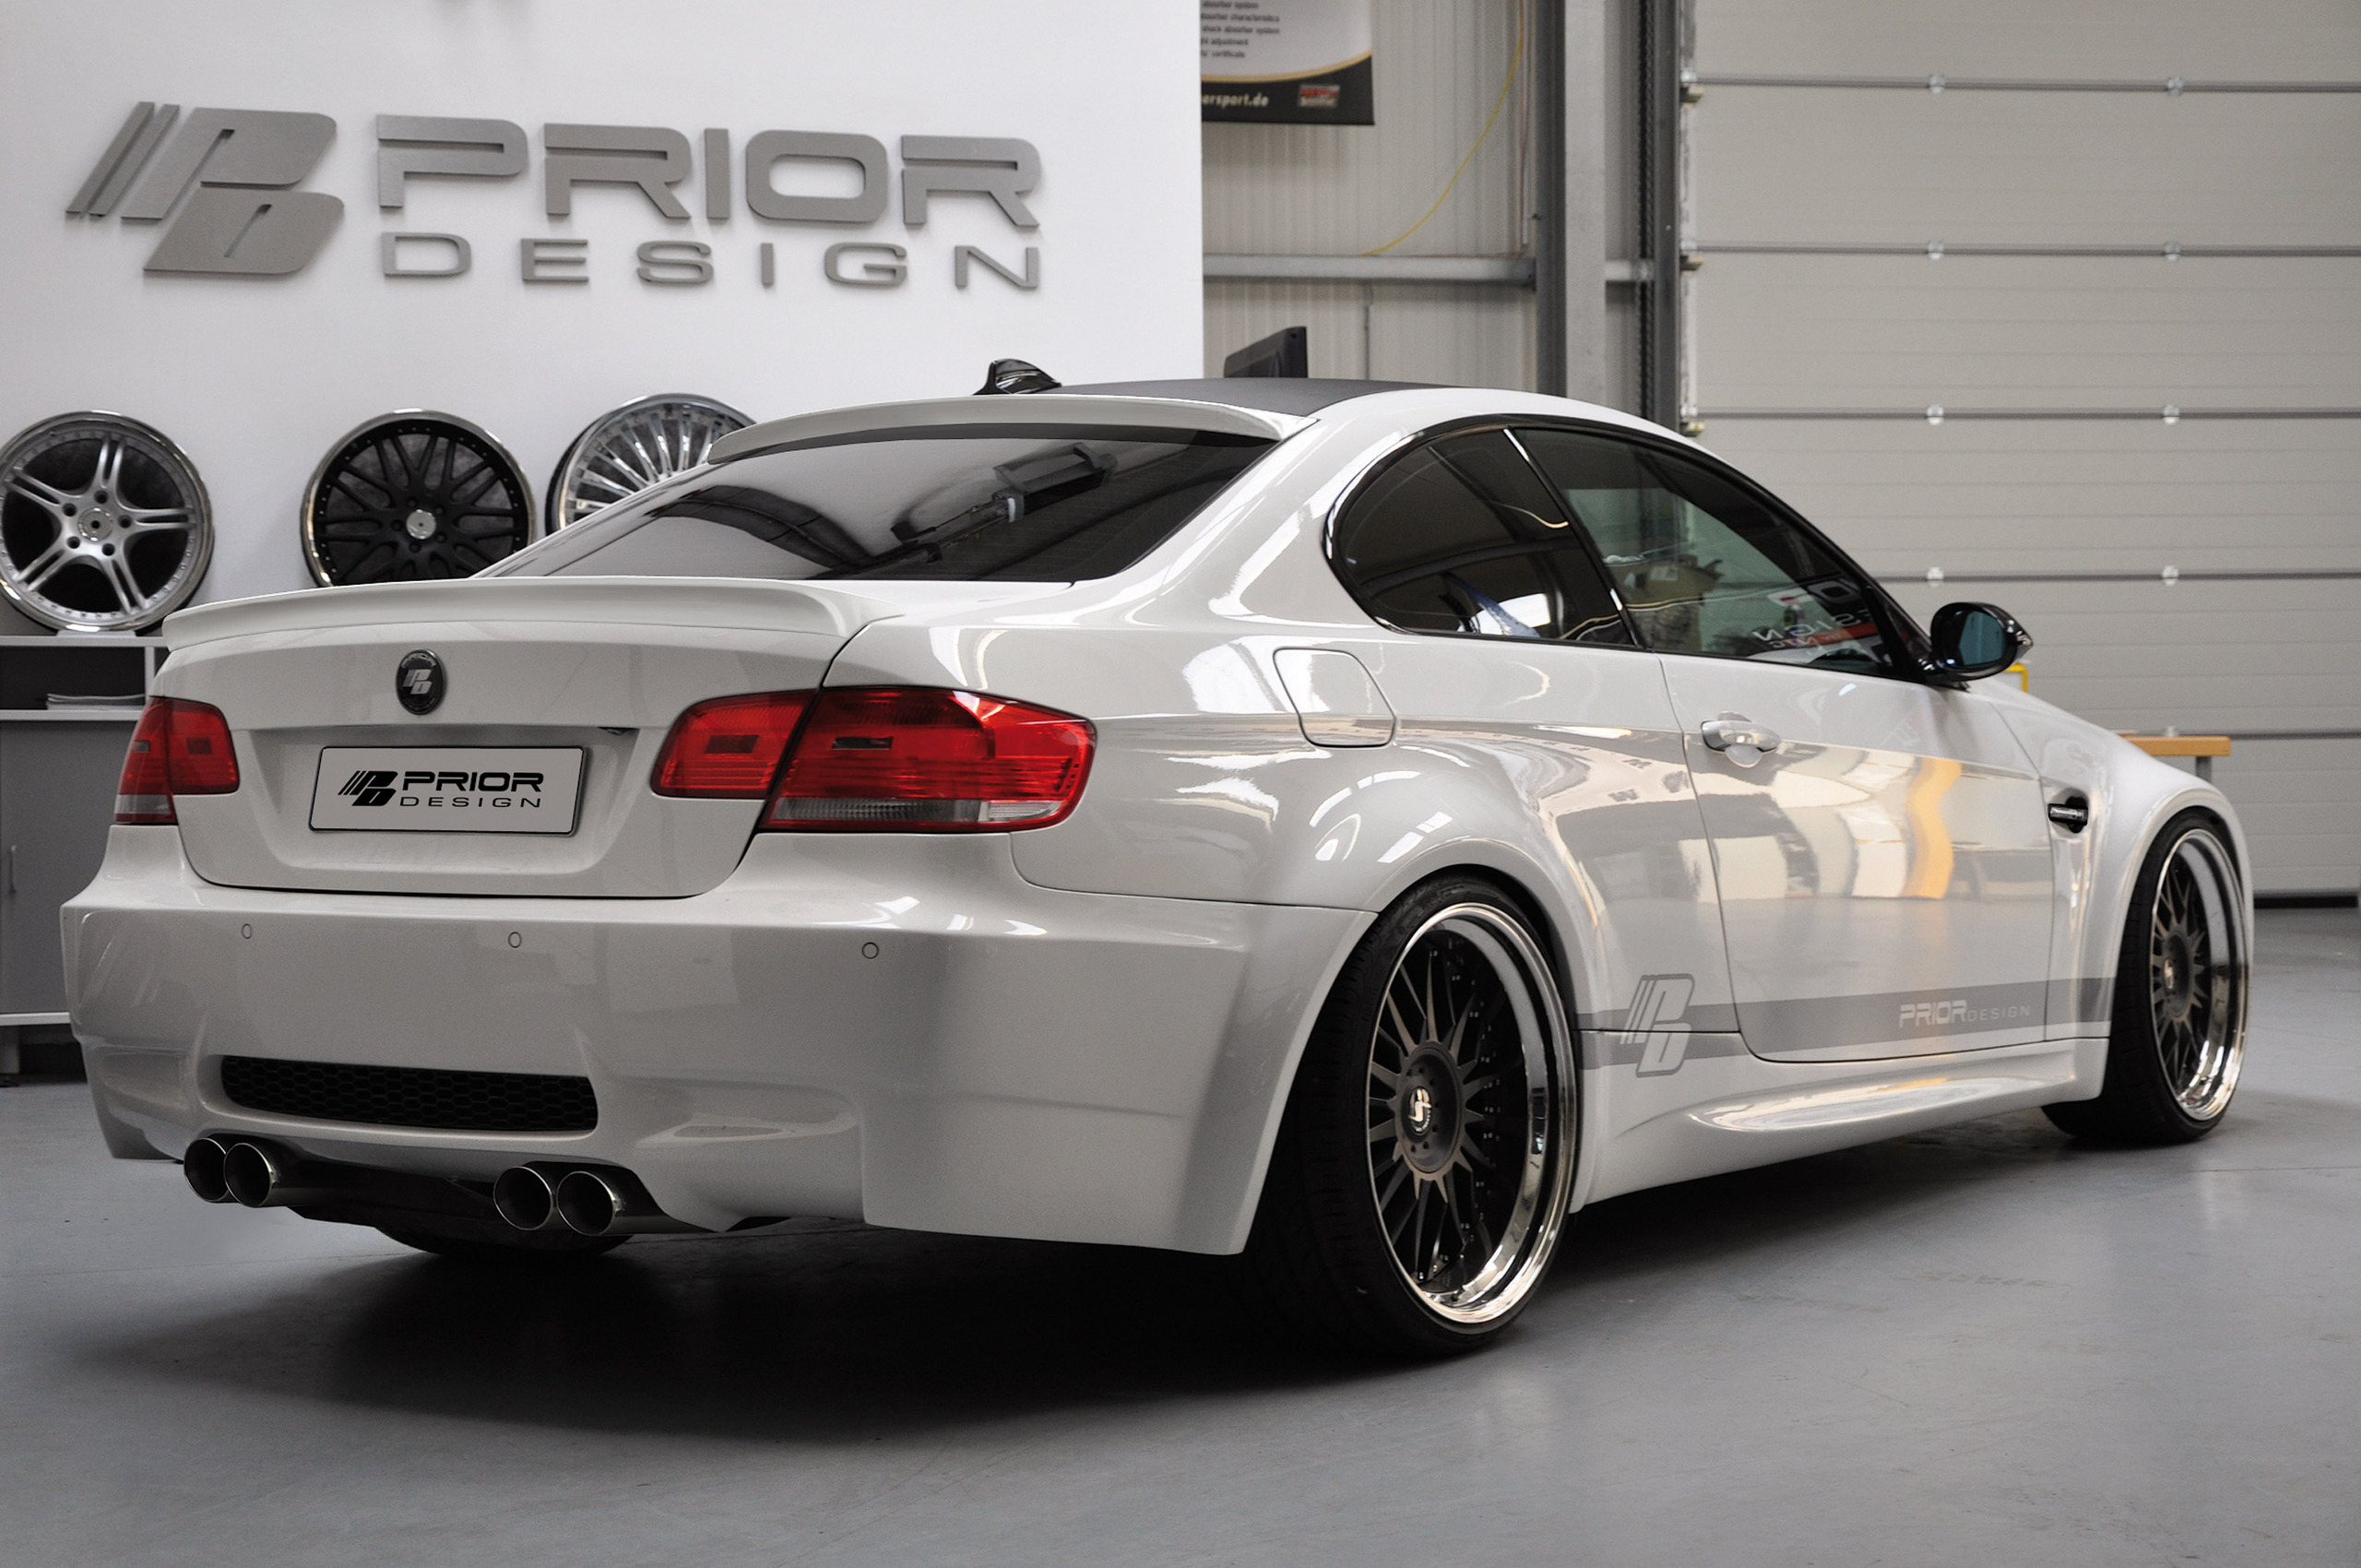 Bmw Images Bmw E92 M3 By Prior Design Hd Wallpaper And Background Photos 26822379